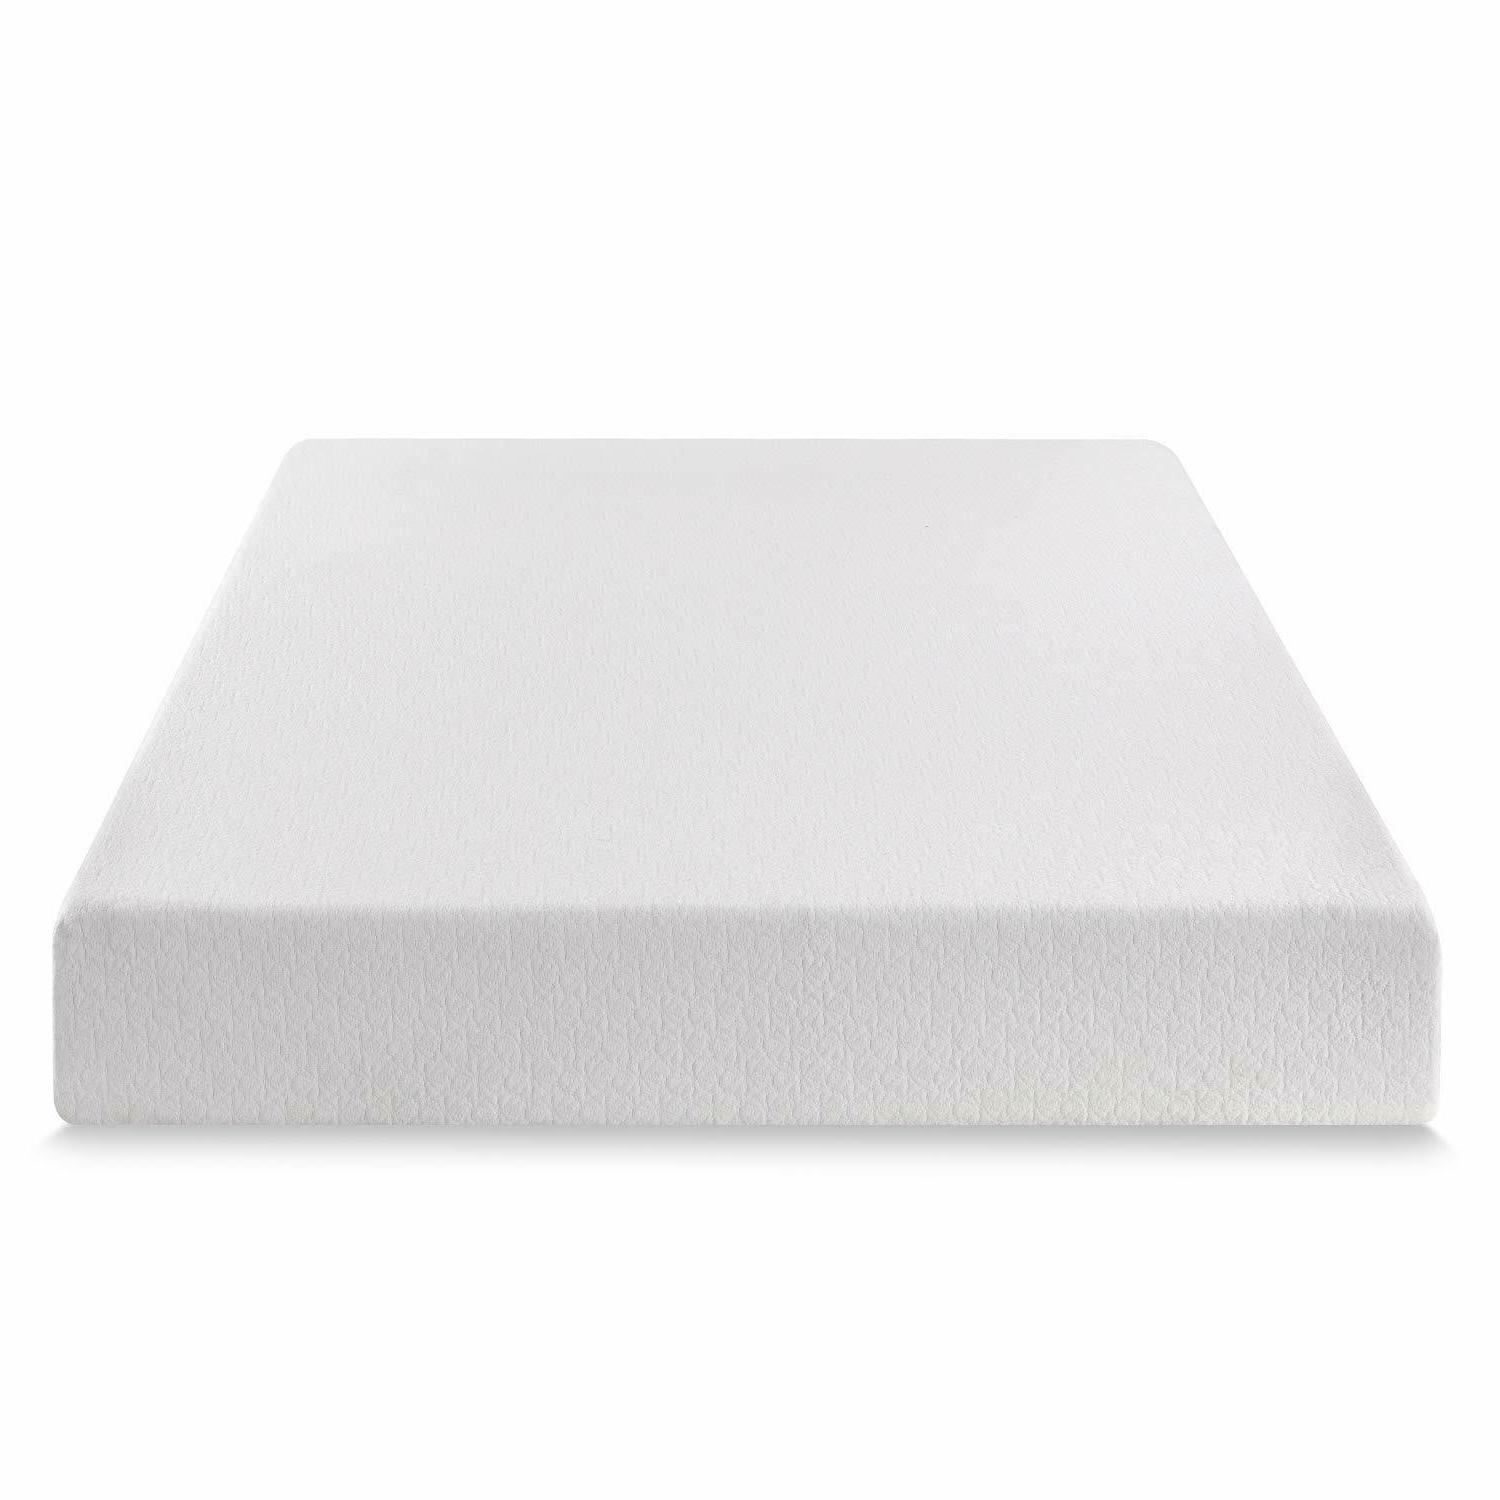 Best Price 10 Inch Memory Body Mattress Size Brand New